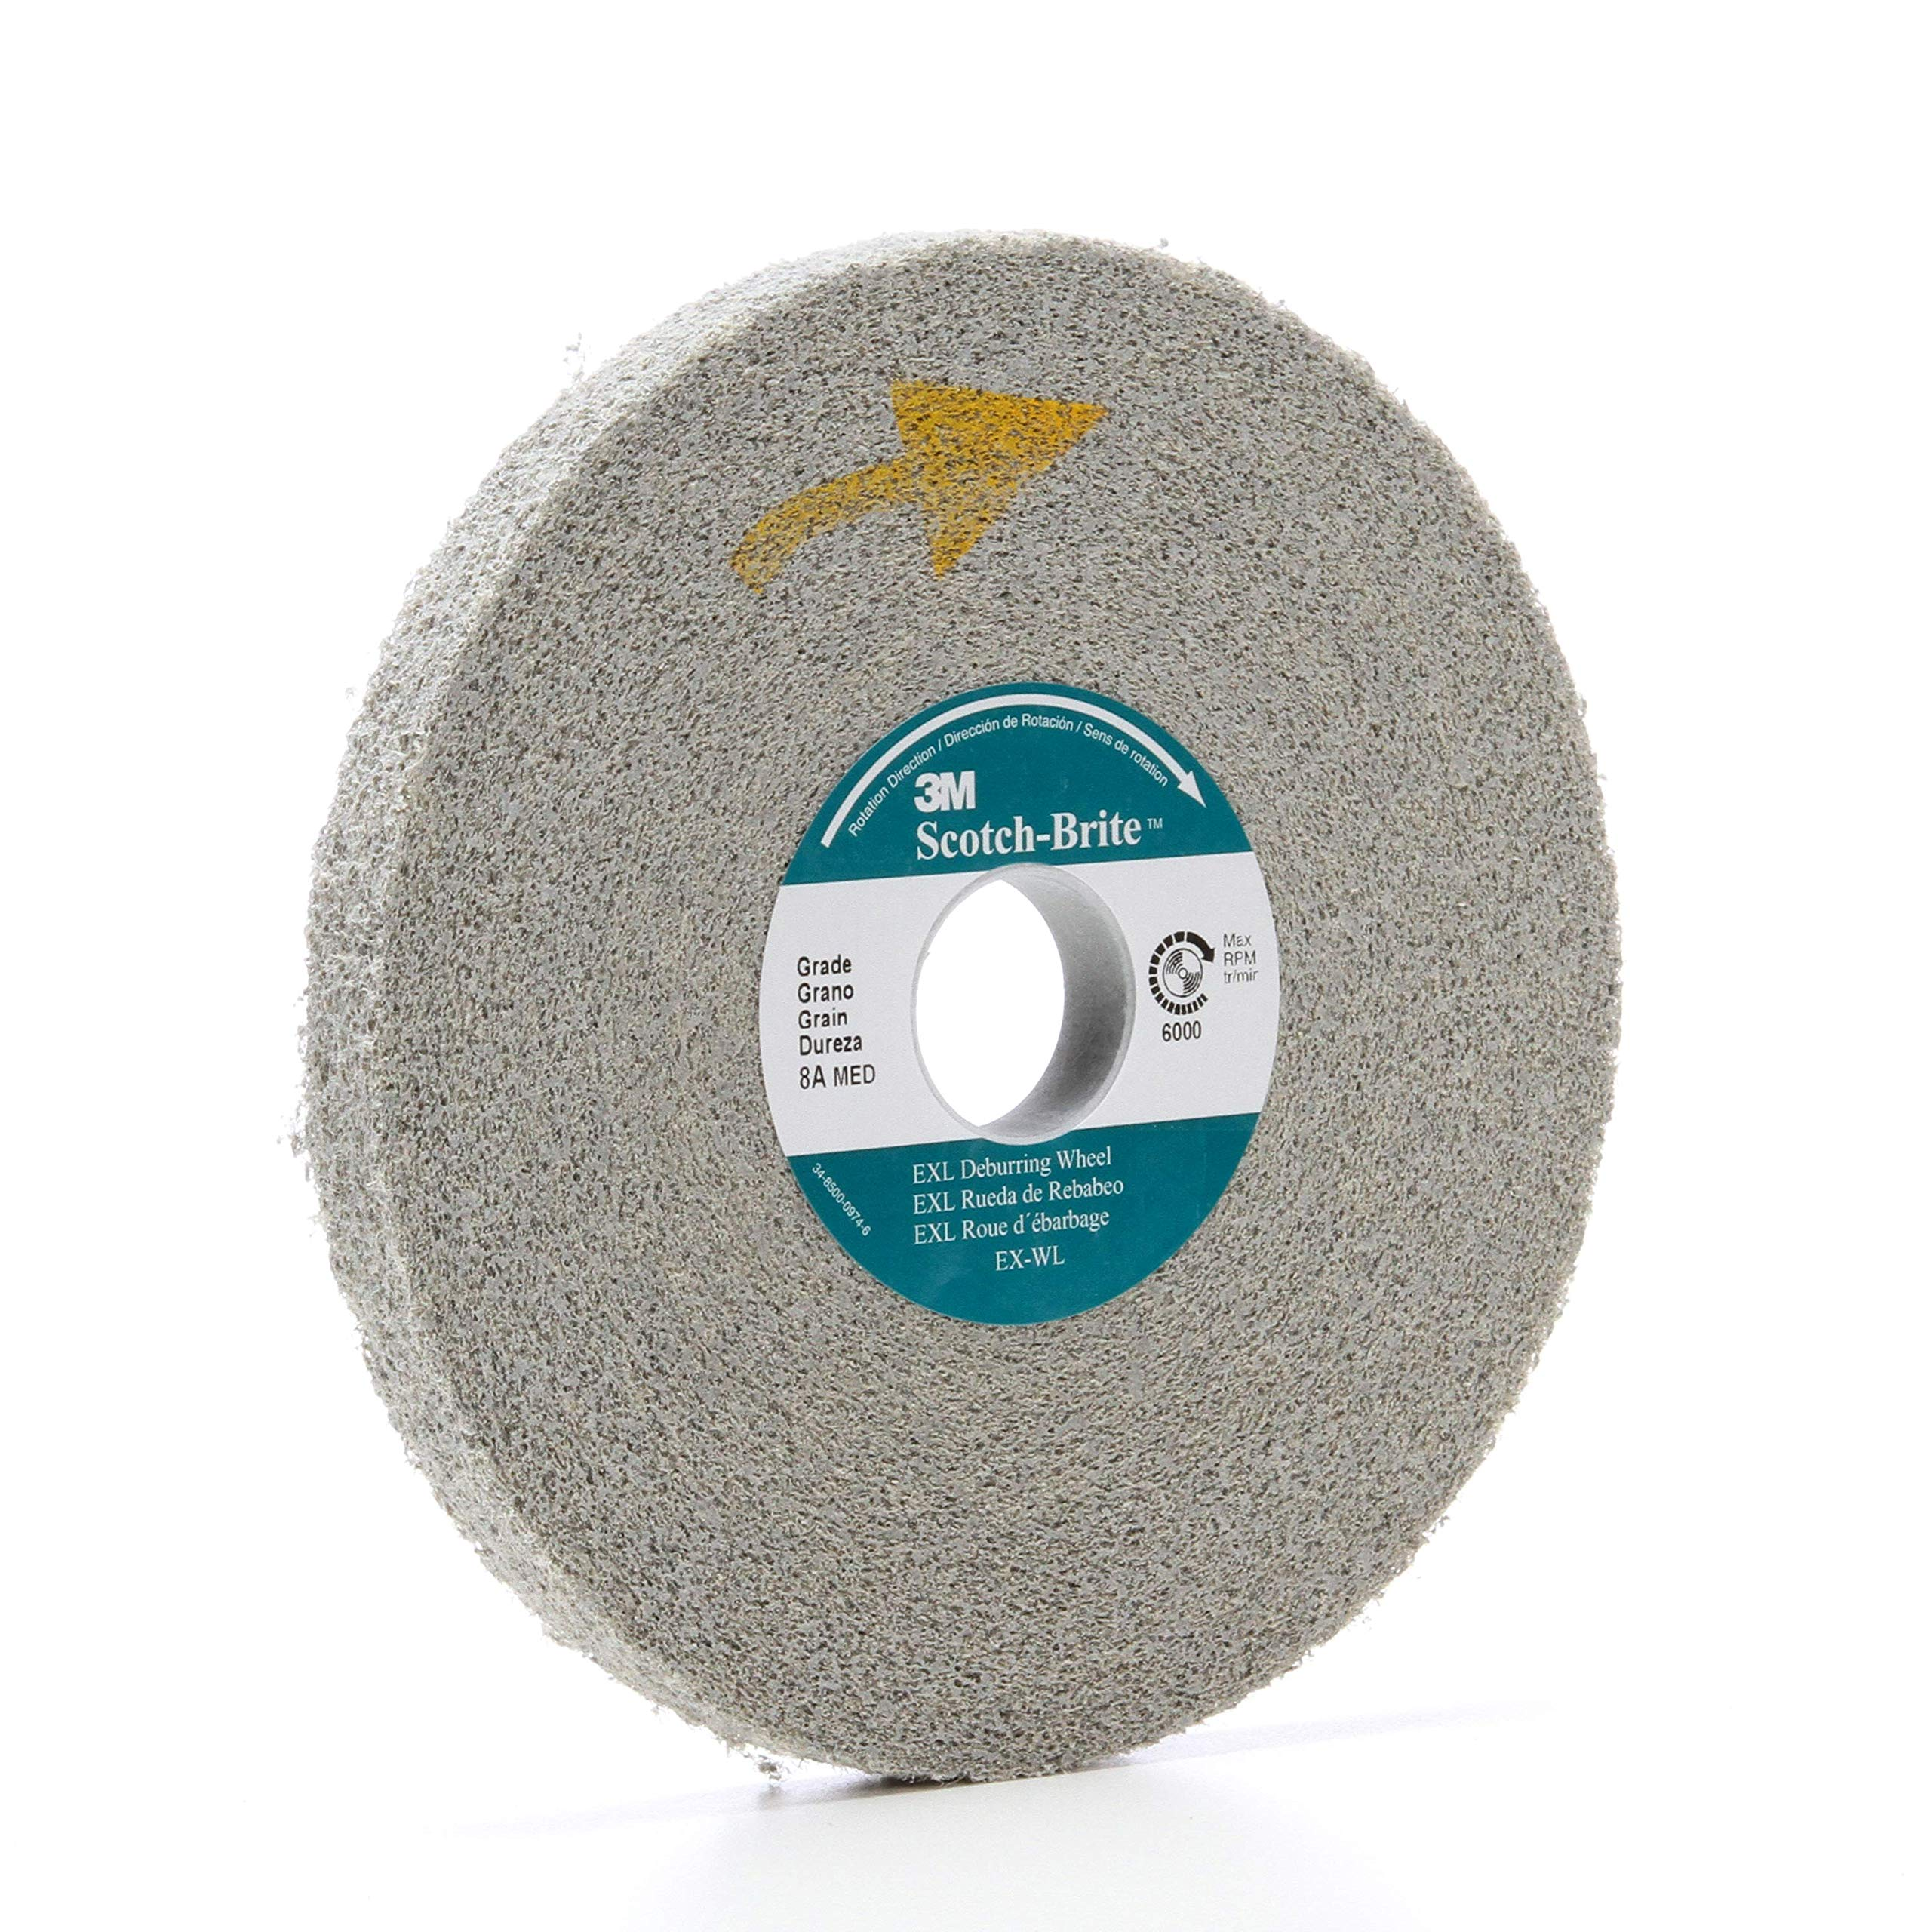 4/PK 3M Scotch-Brite 13616 EXL Deburring Wheel 6 in X 1/2 in X 1 in 8A MED // 7000046060 by APD-Incorporated